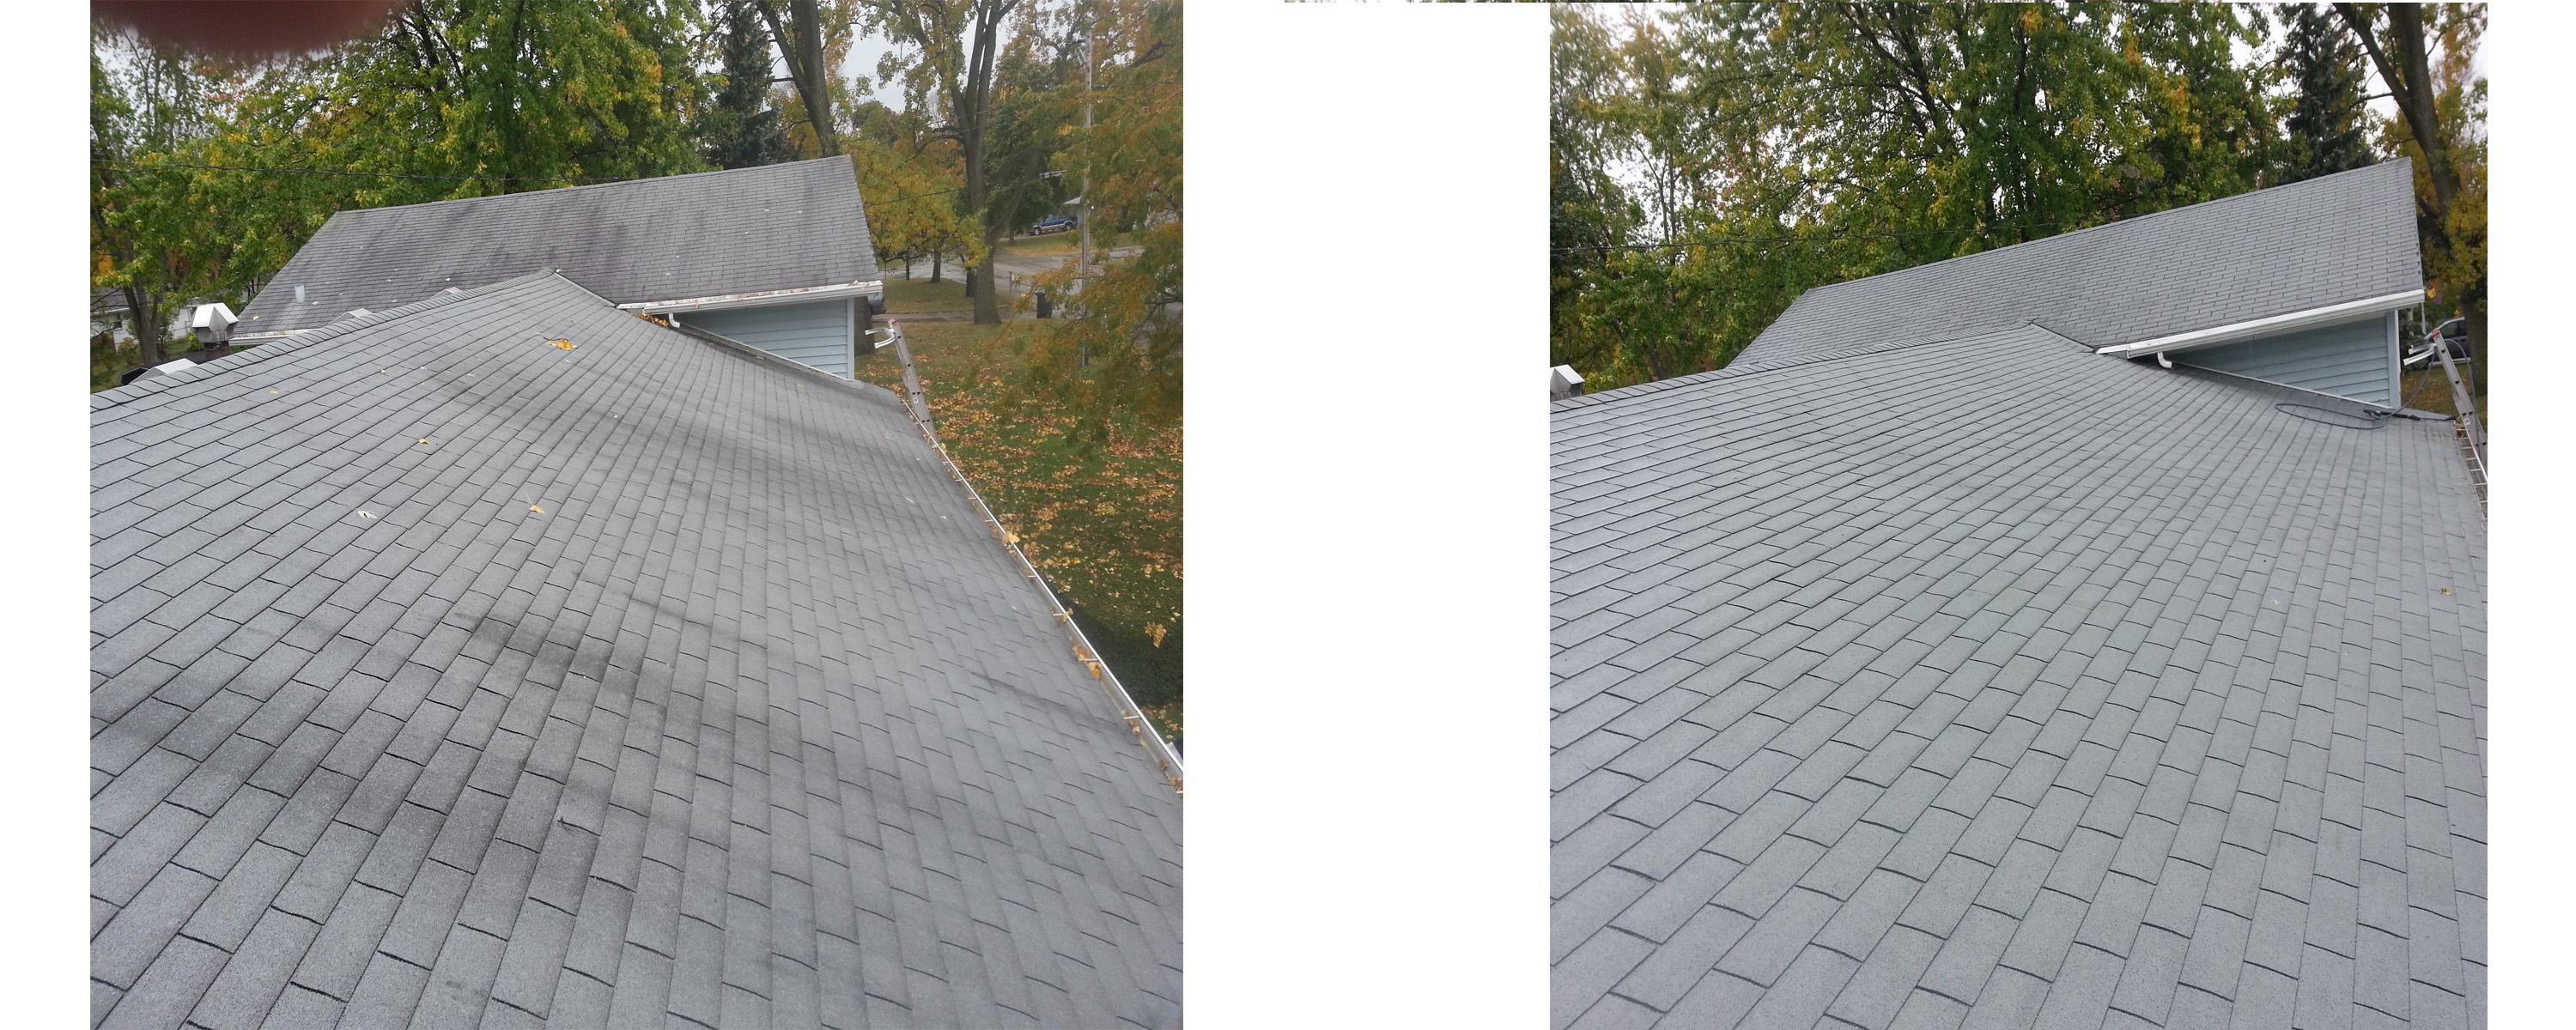 Roof Cleaning Aaa Professional Pressure Washing Amp Window